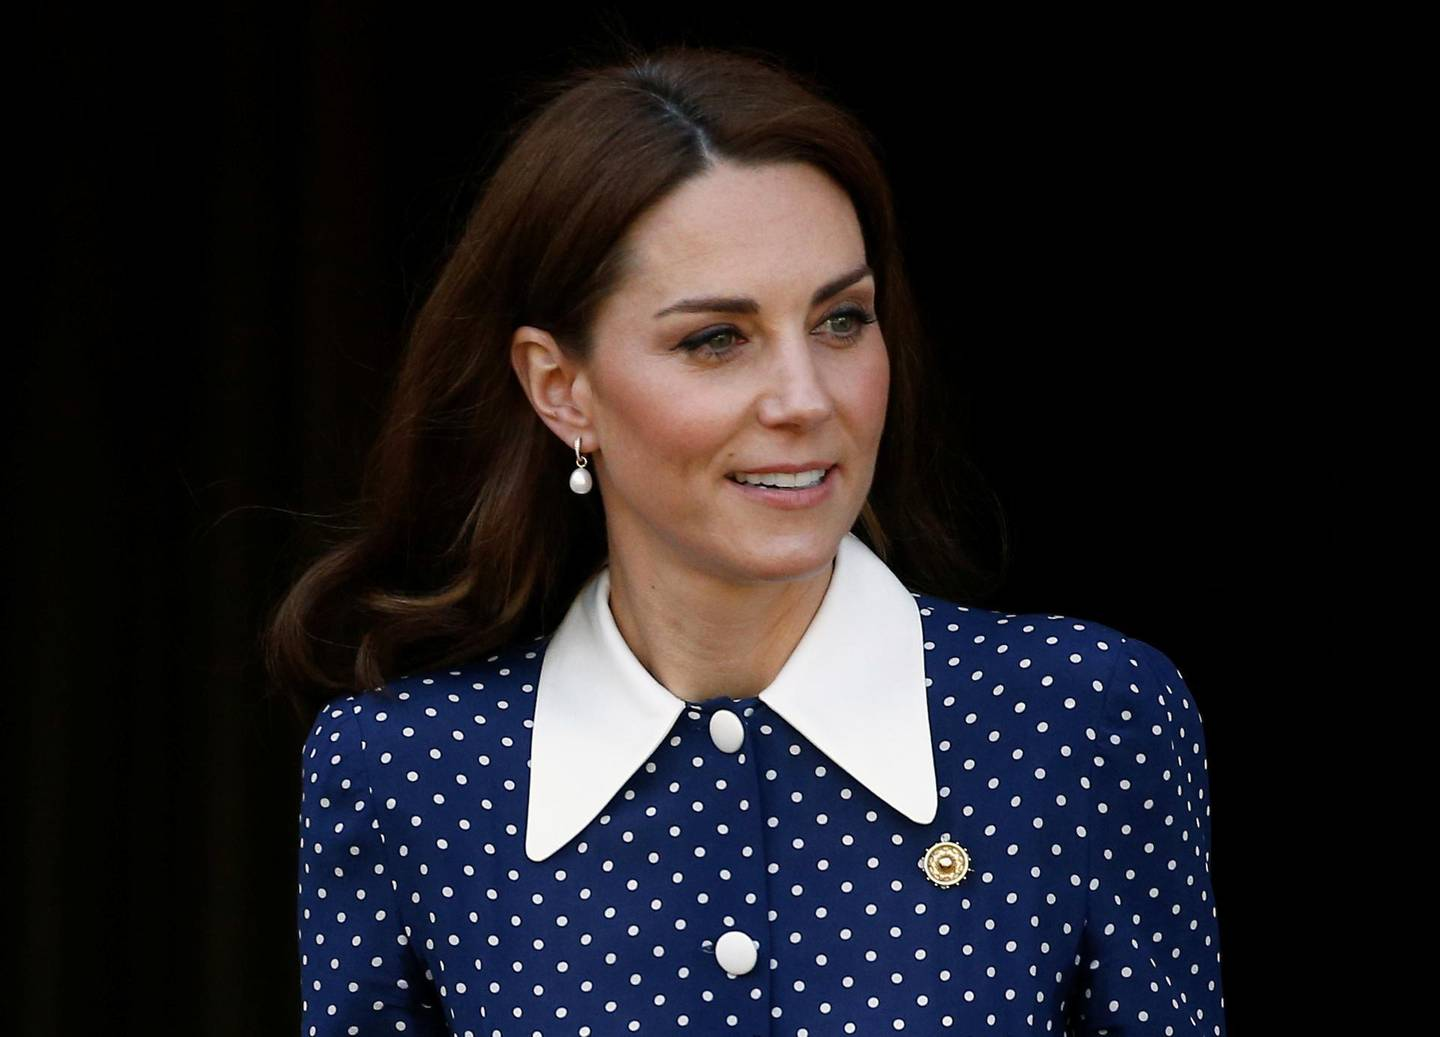 Britain's Catherine, Duchess of Cambridge, leaves Bletchley Park after viewing a D-Day Exhibition in Milton Keynes, Britain May 14, 2019. REUTERS/Henry Nicholls